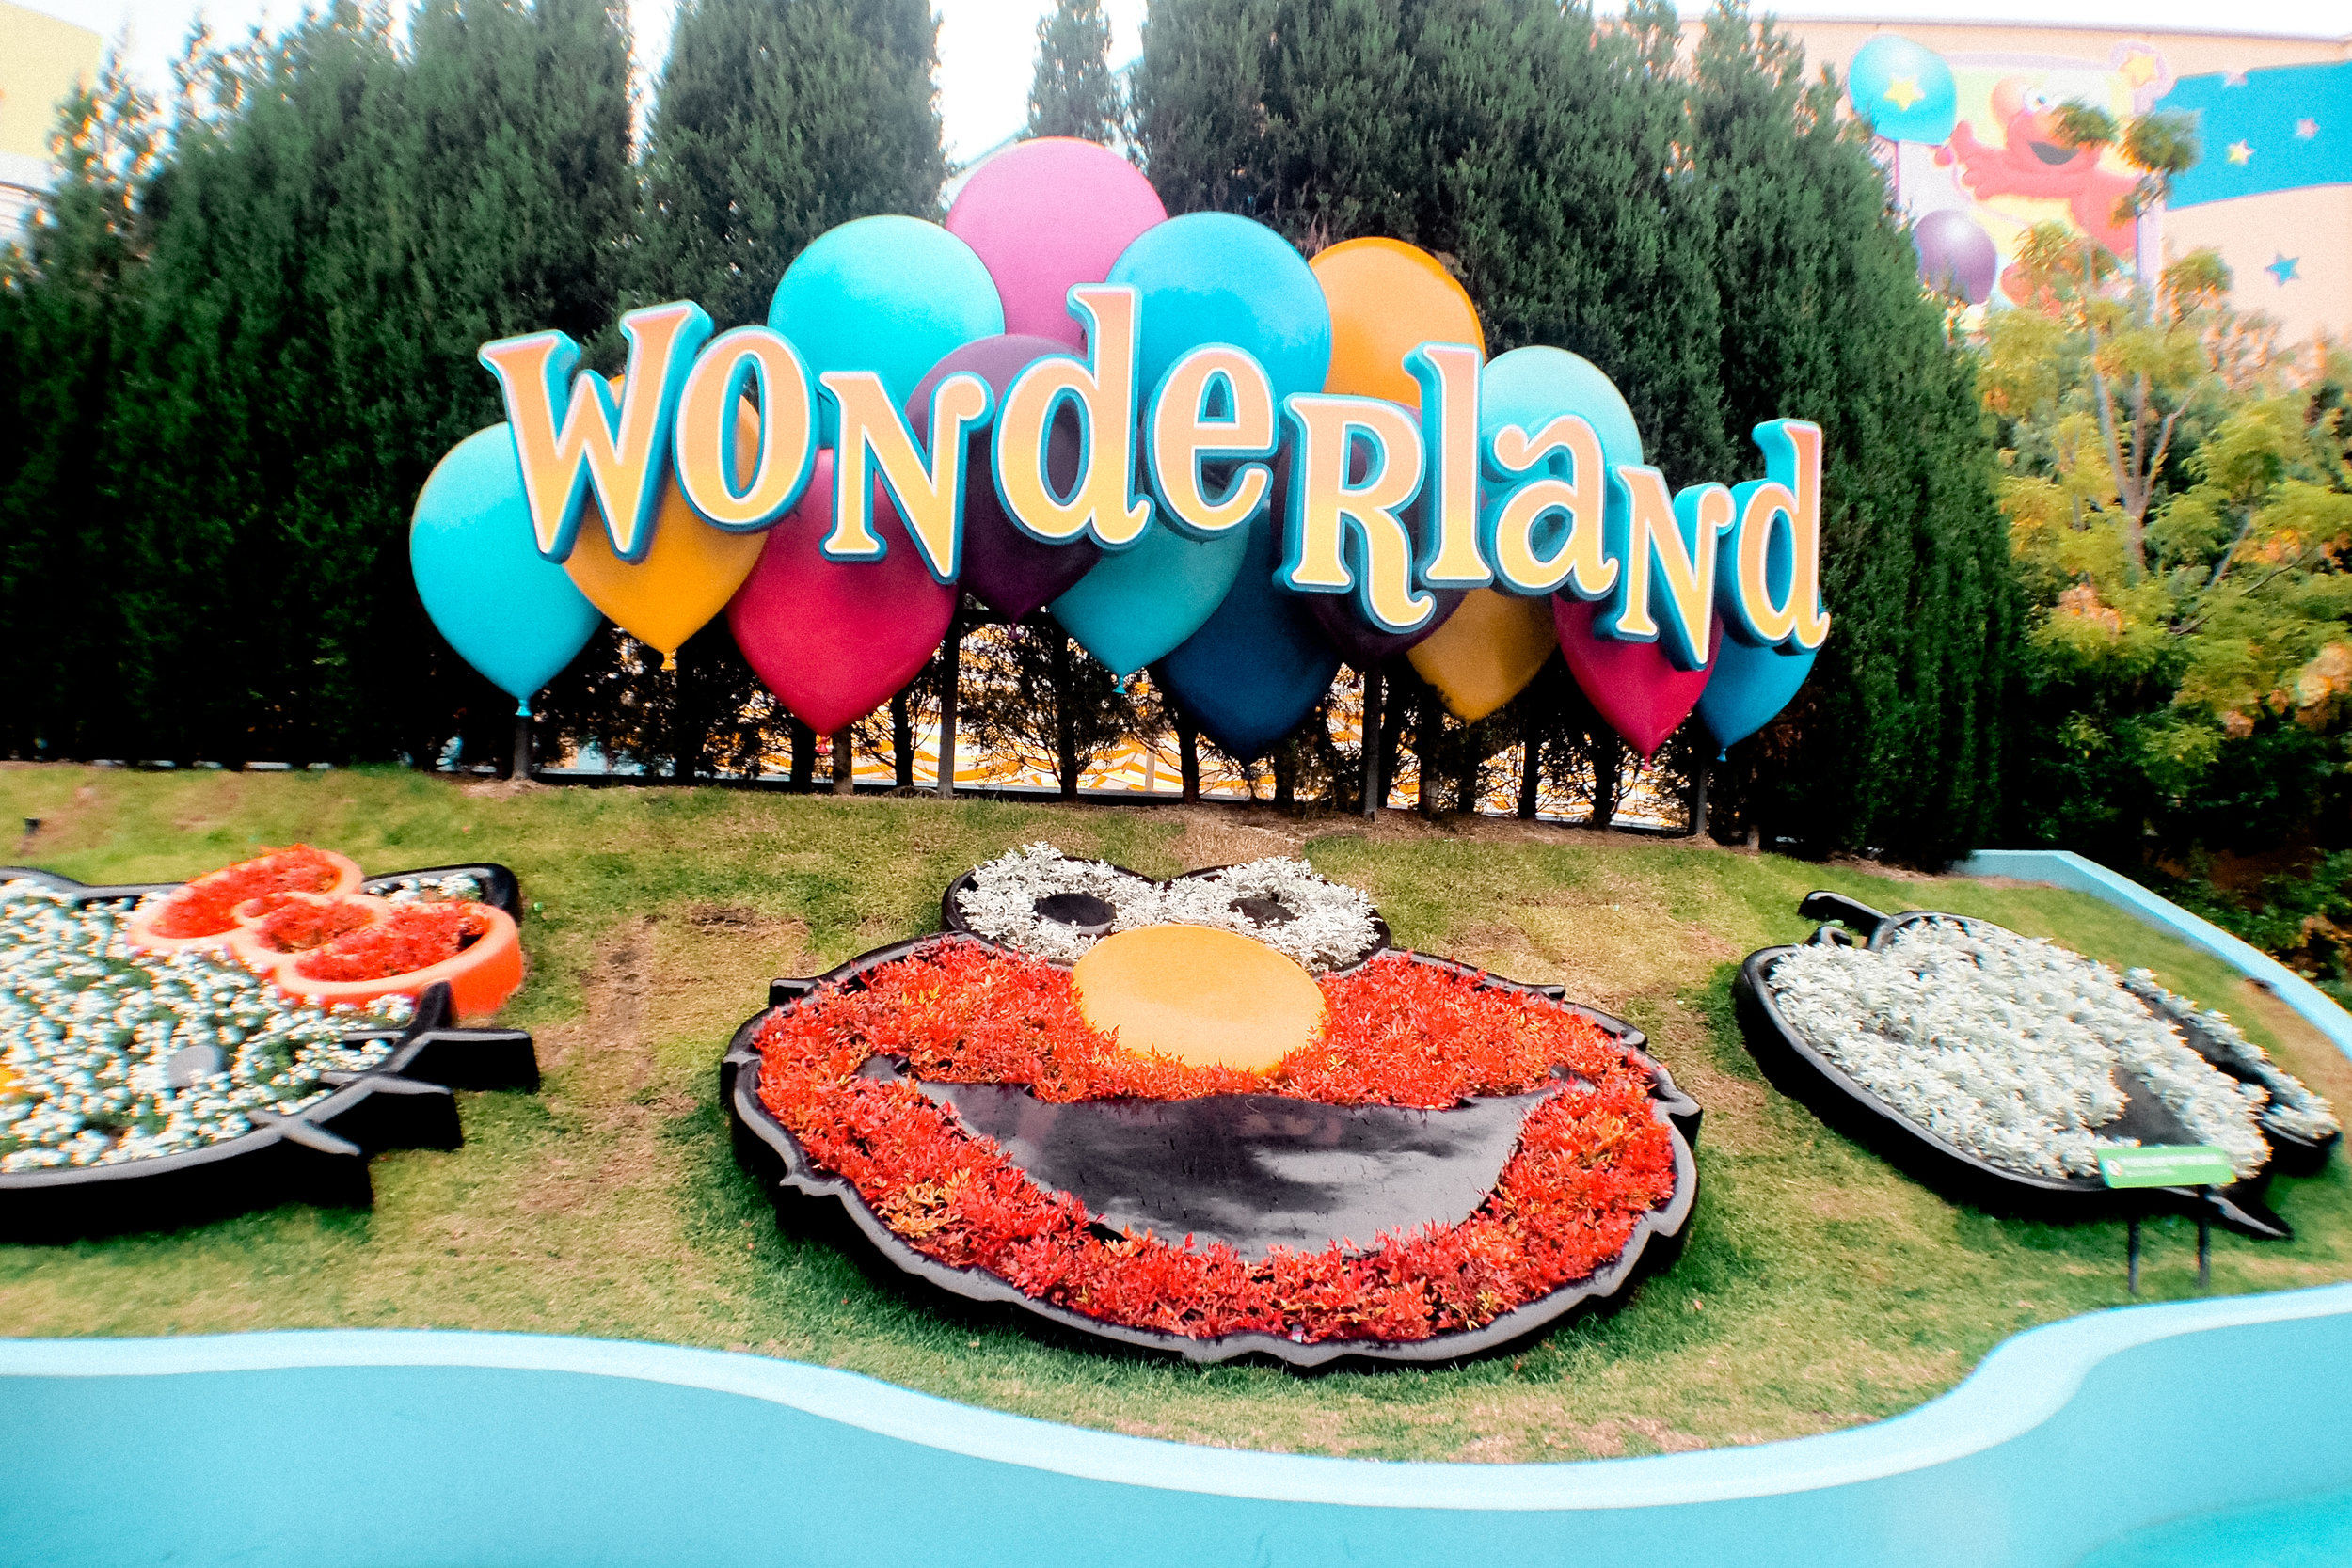 Passed by briefly at the Wonderland to see the kiddie rides.